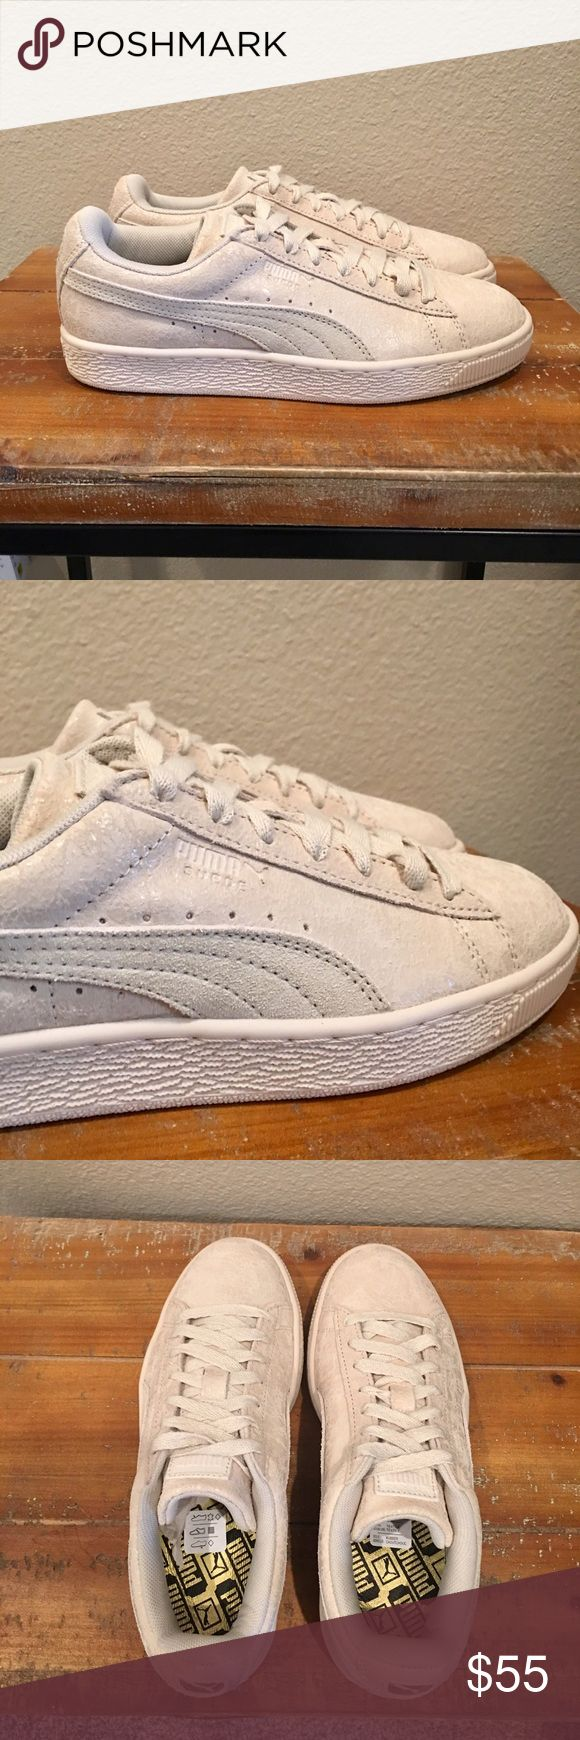 Women's Cream Suede Pumas Brand new. Never been worn. Beautiful cream Suede, cream laces on cream sole. These have a beautiful never seen before sheen to the suede👌🏼 No trades, no lowball offers, no joke.😊 Price is firm.🌹 Puma Shoes Sneakers